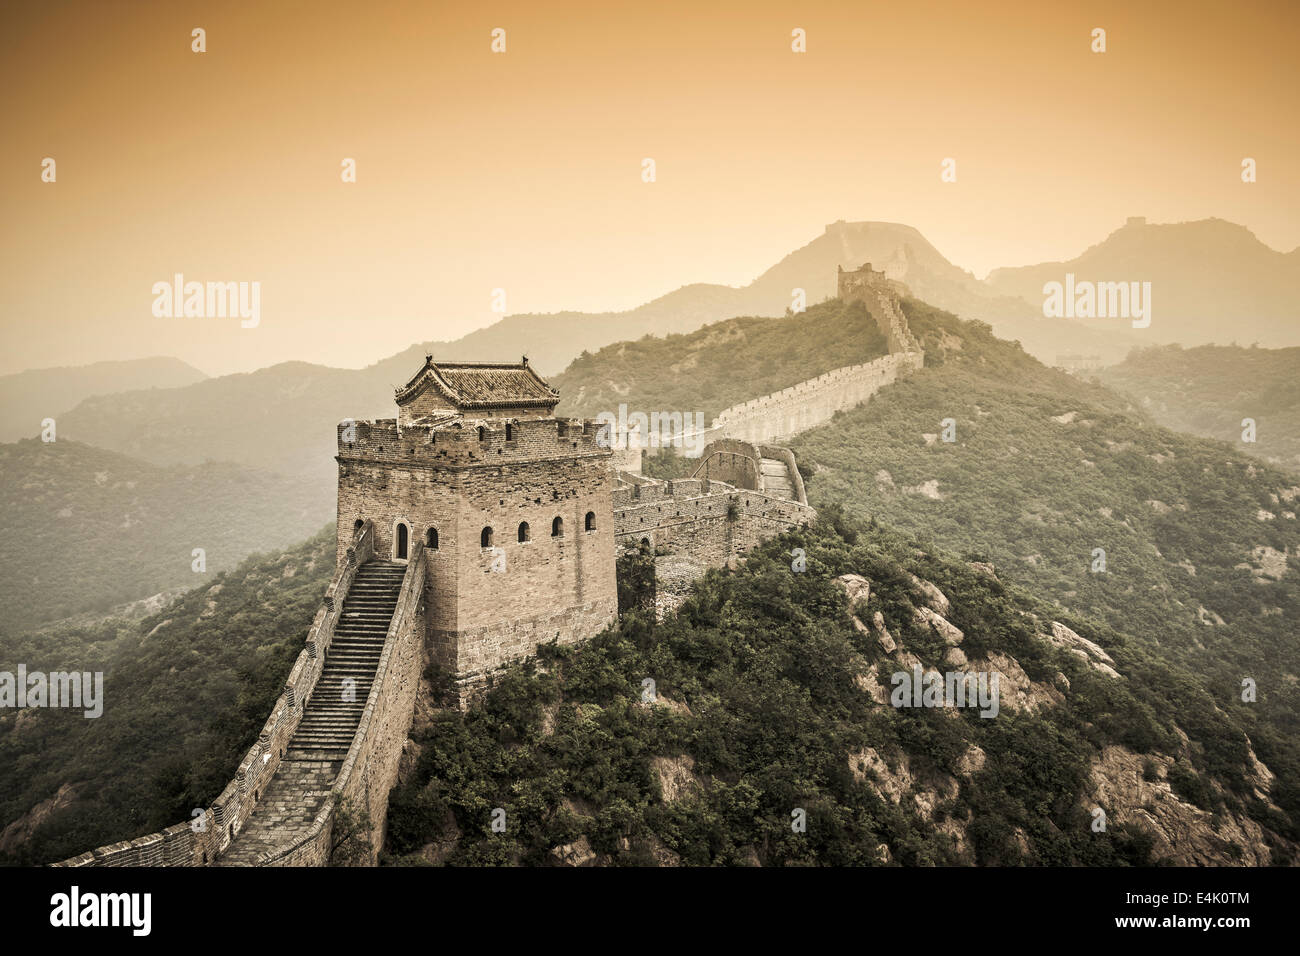 Partially restored section of the Great Wall in Jinshanling, Beijijng, China. - Stock Image